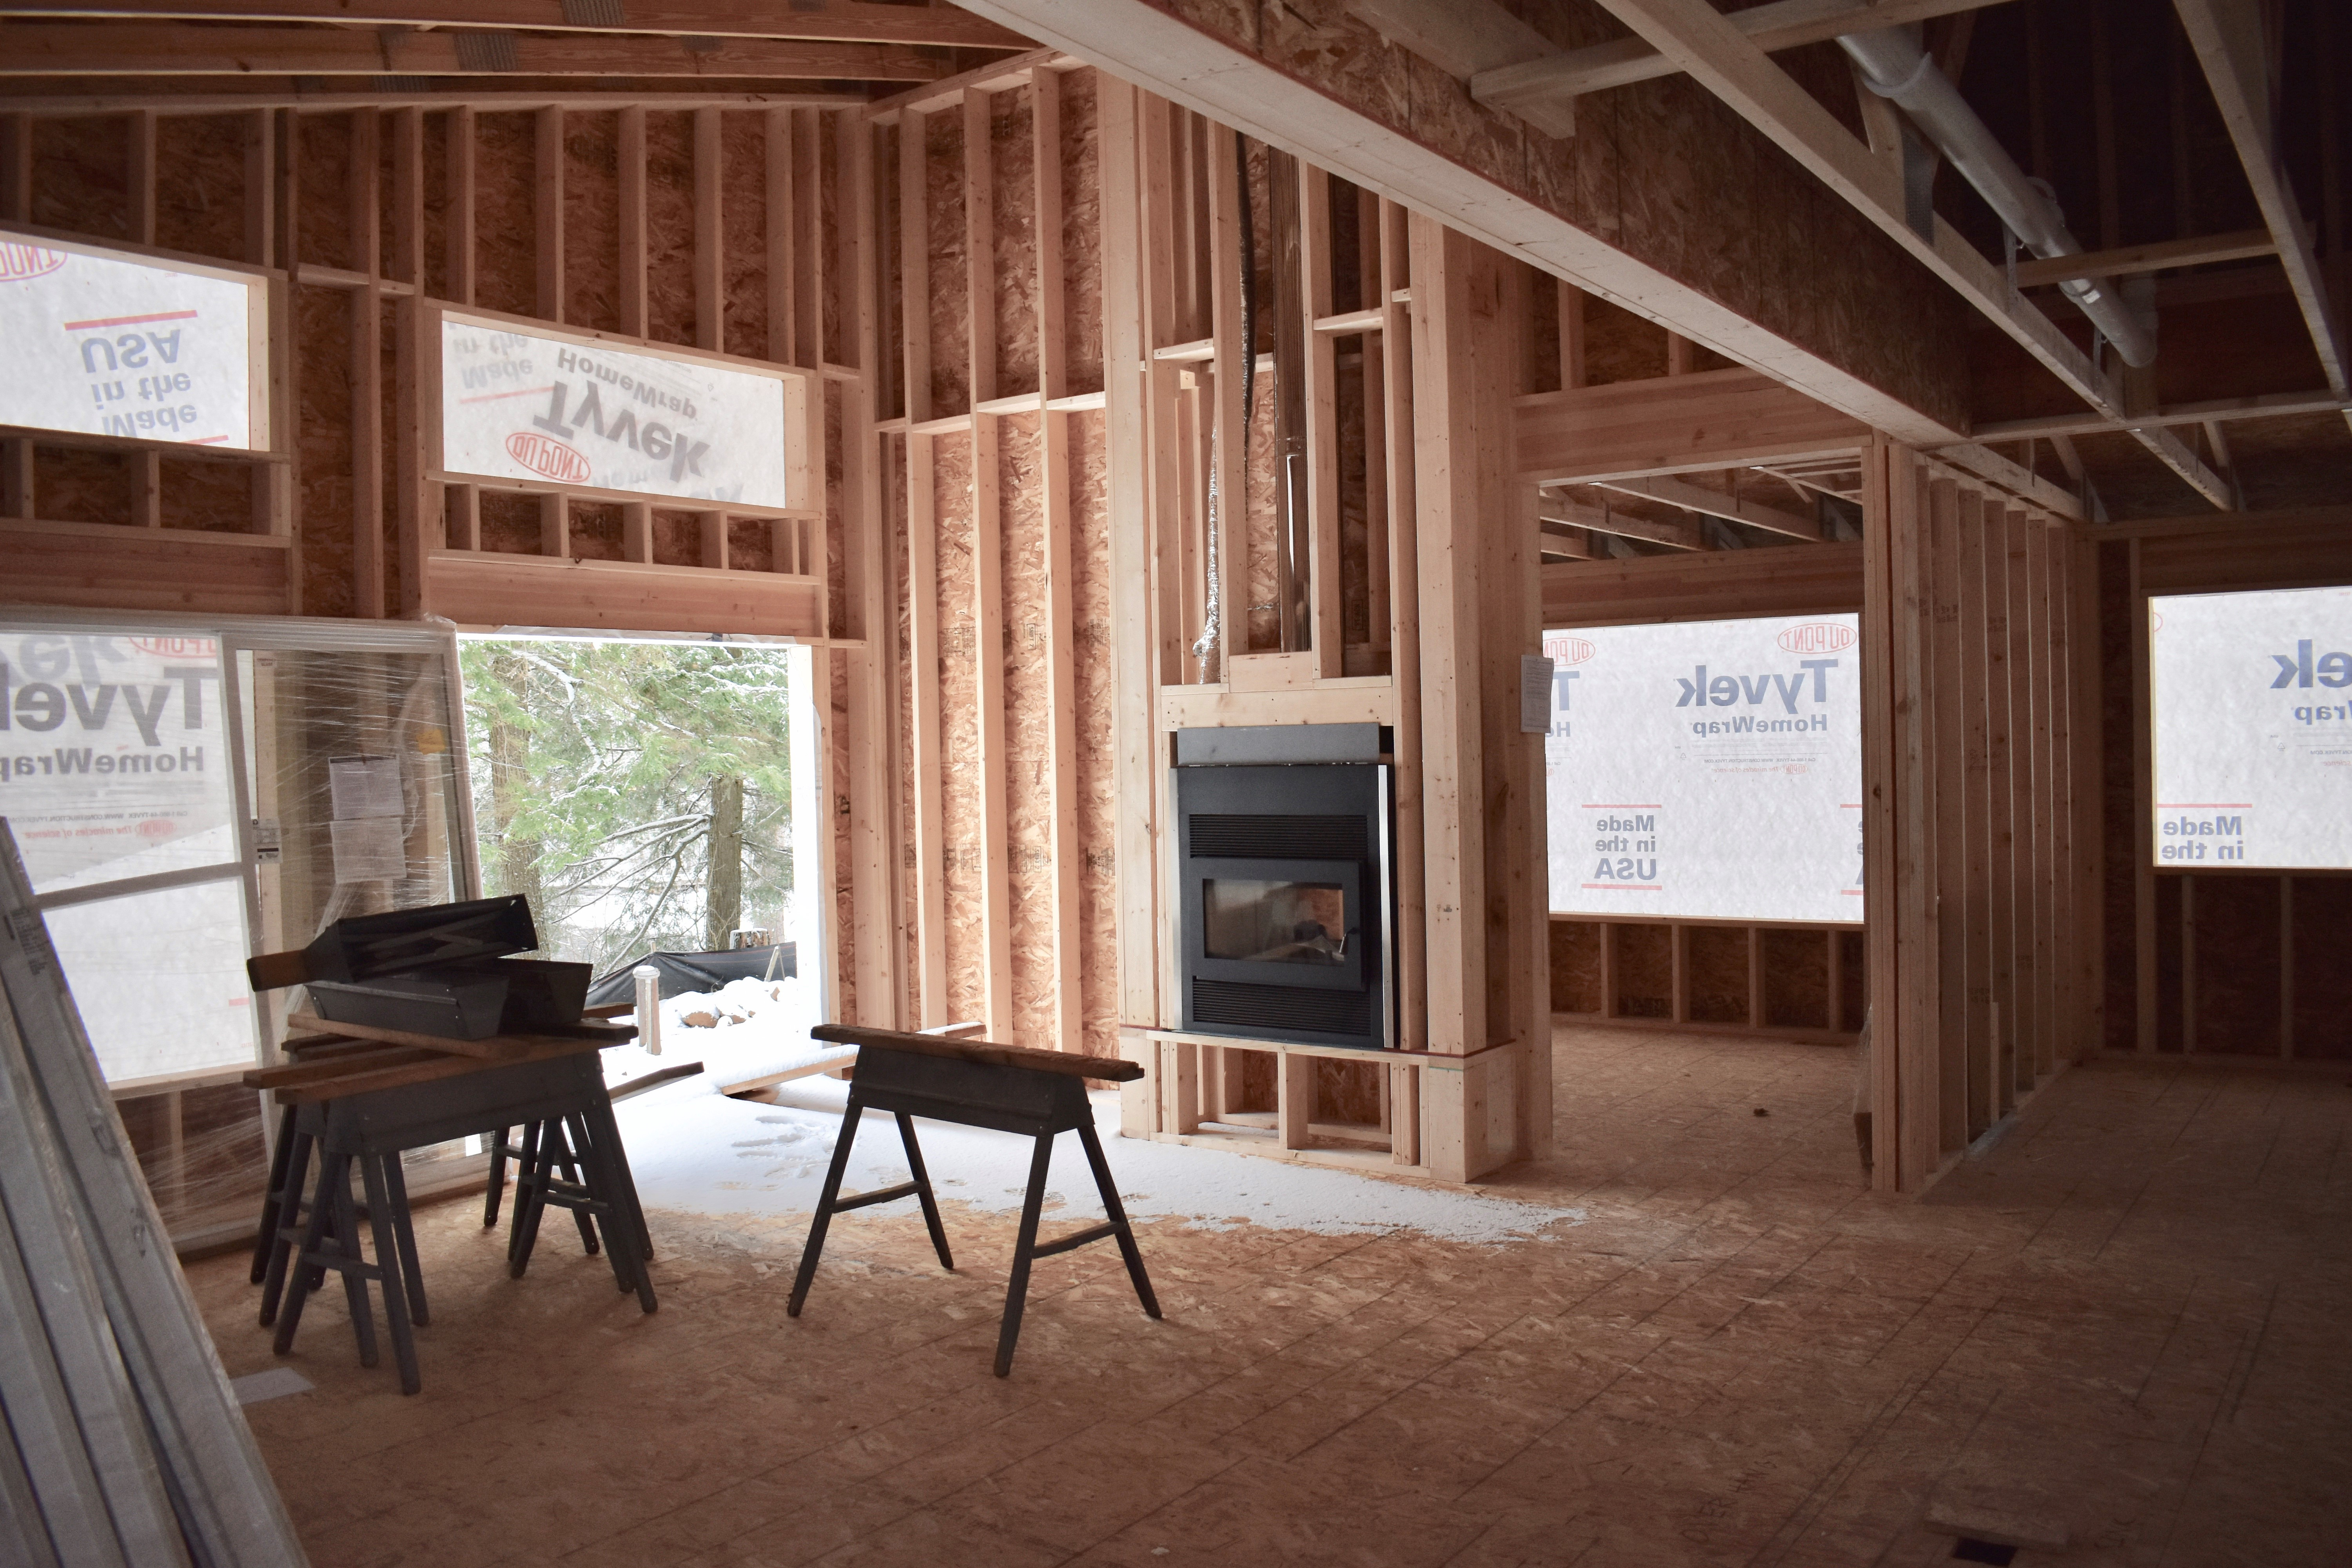 Interior of a home currently under construction - exposed beams, unfinished walls, and unfinished flooring can be seen. There is a fireplace installed in the wall.